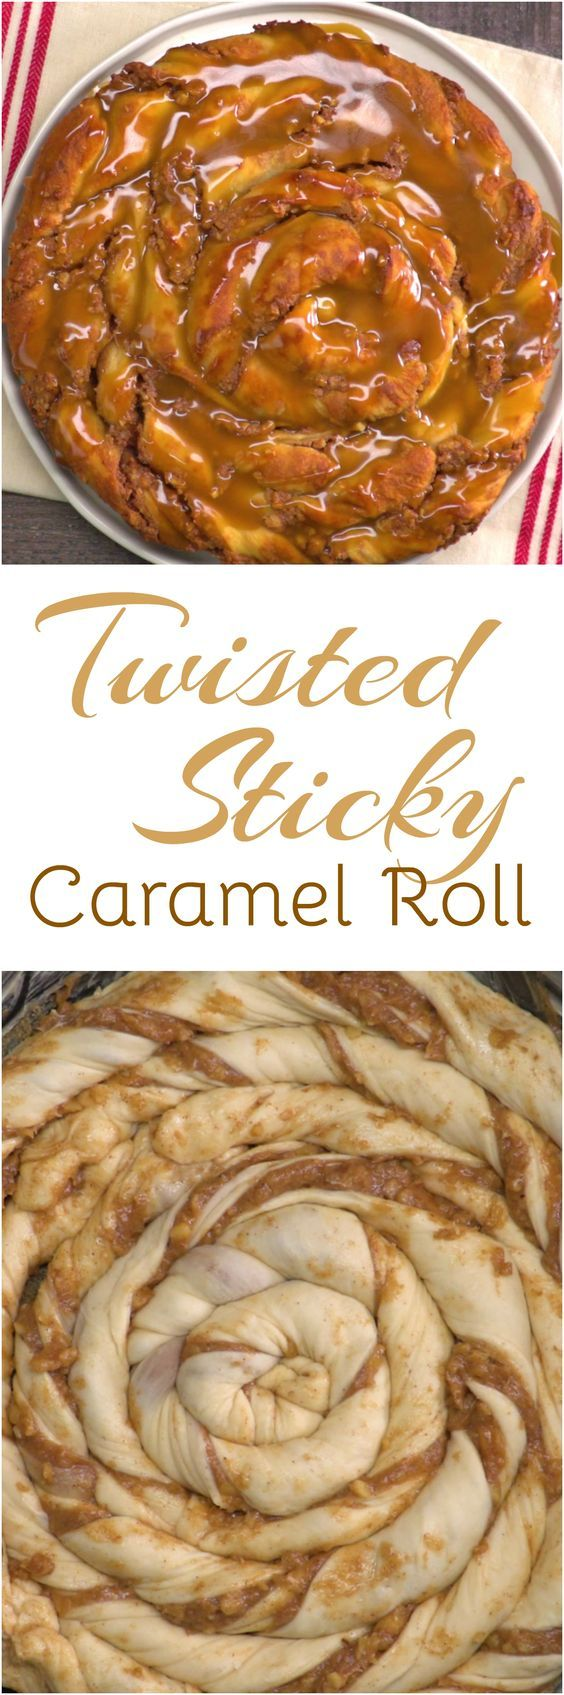 Twisted Sticky Caramel Roll is part of Caramel rolls - cinnamon roll mashup is not as complicated as it looks!